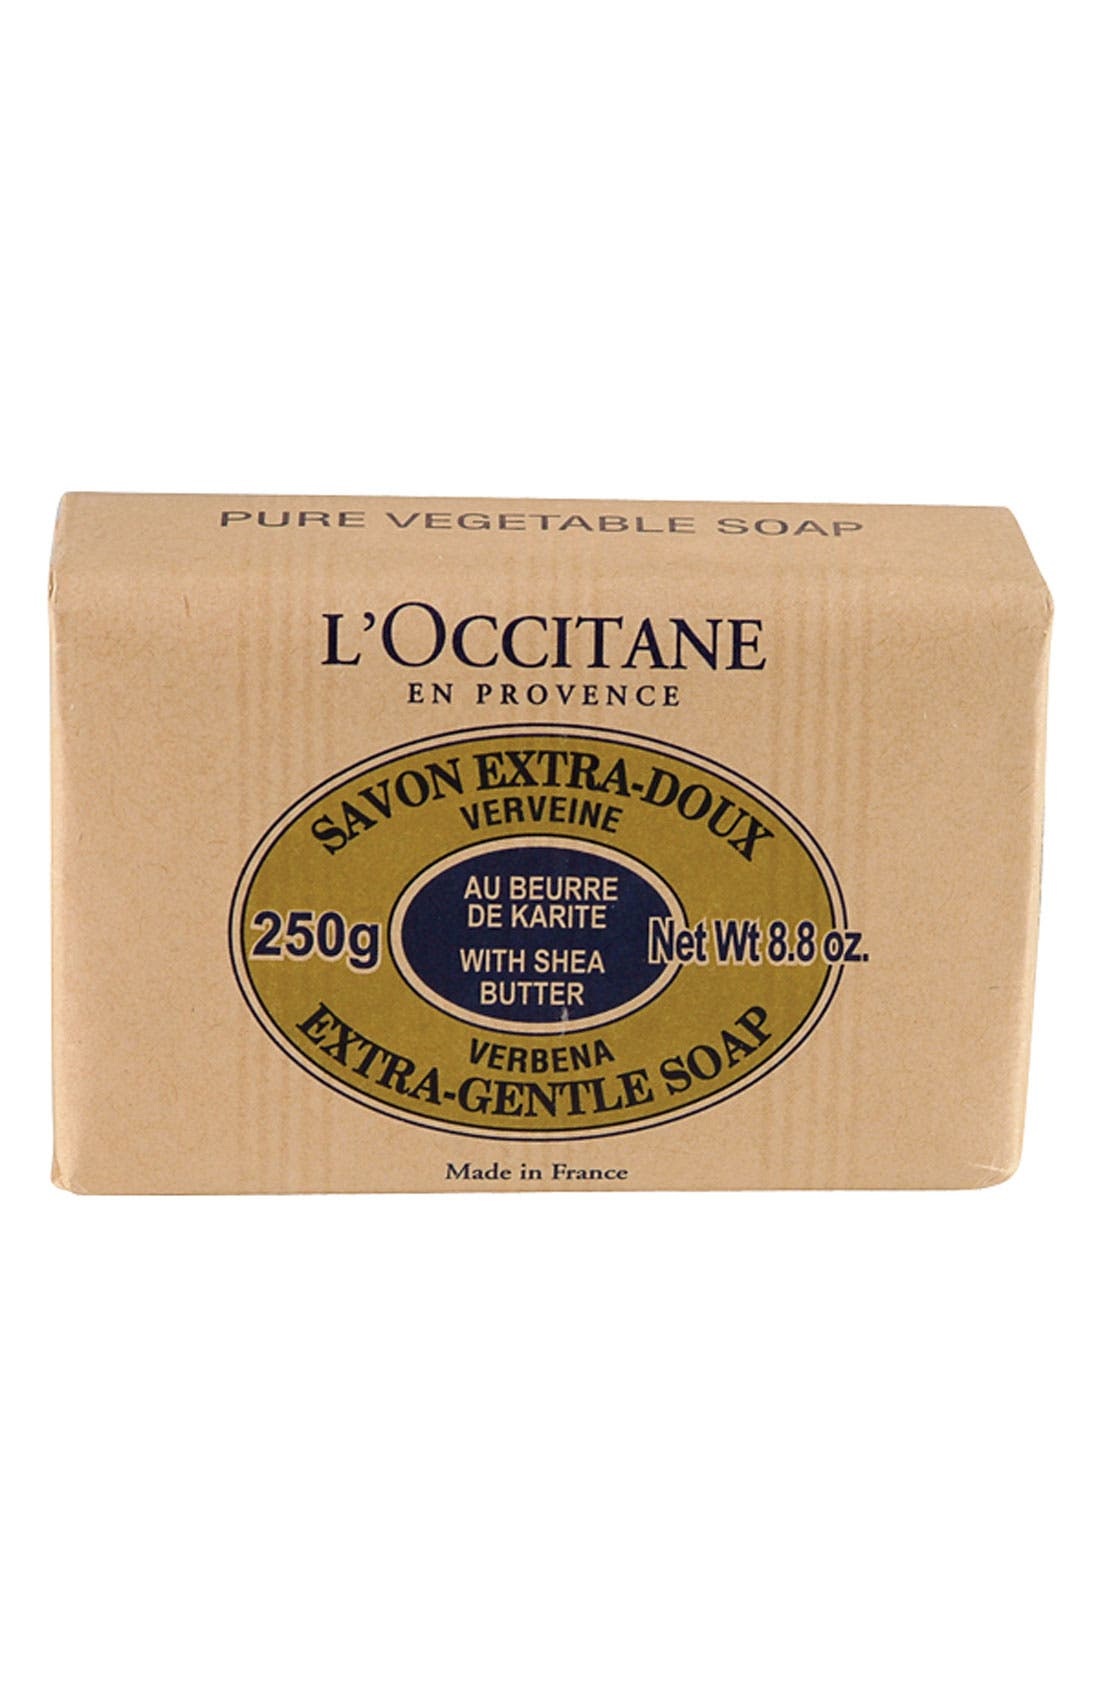 L'Occitane 'Verbena' Shea Butter Extra Gentle Soap